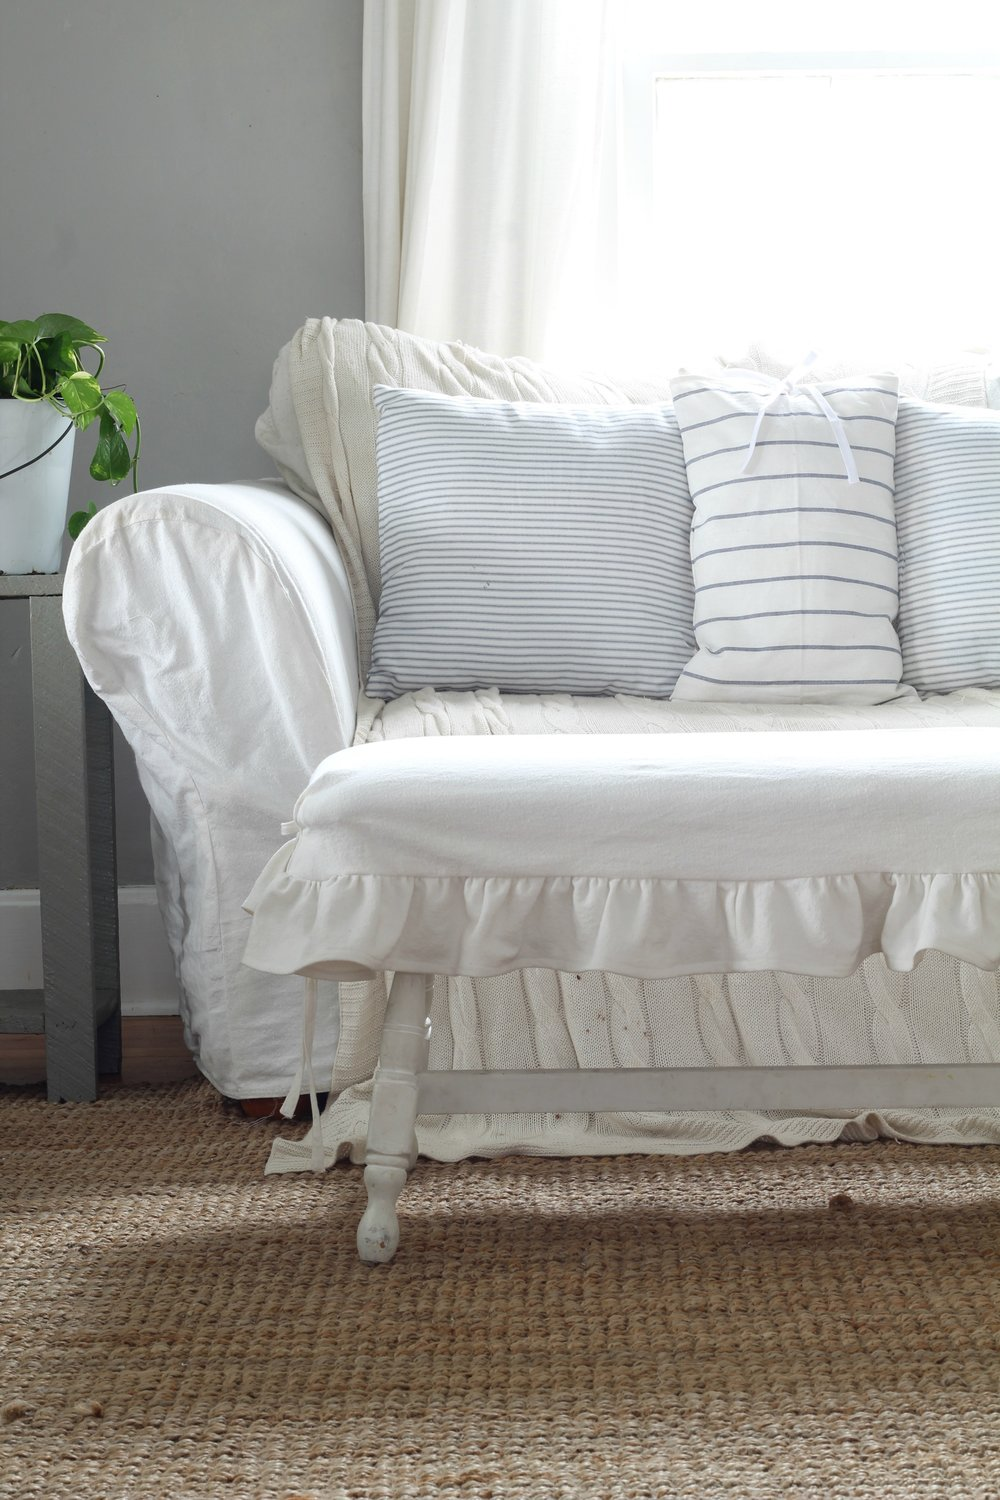 Simple DIY Pillow Covers from IKEA Tea Towels